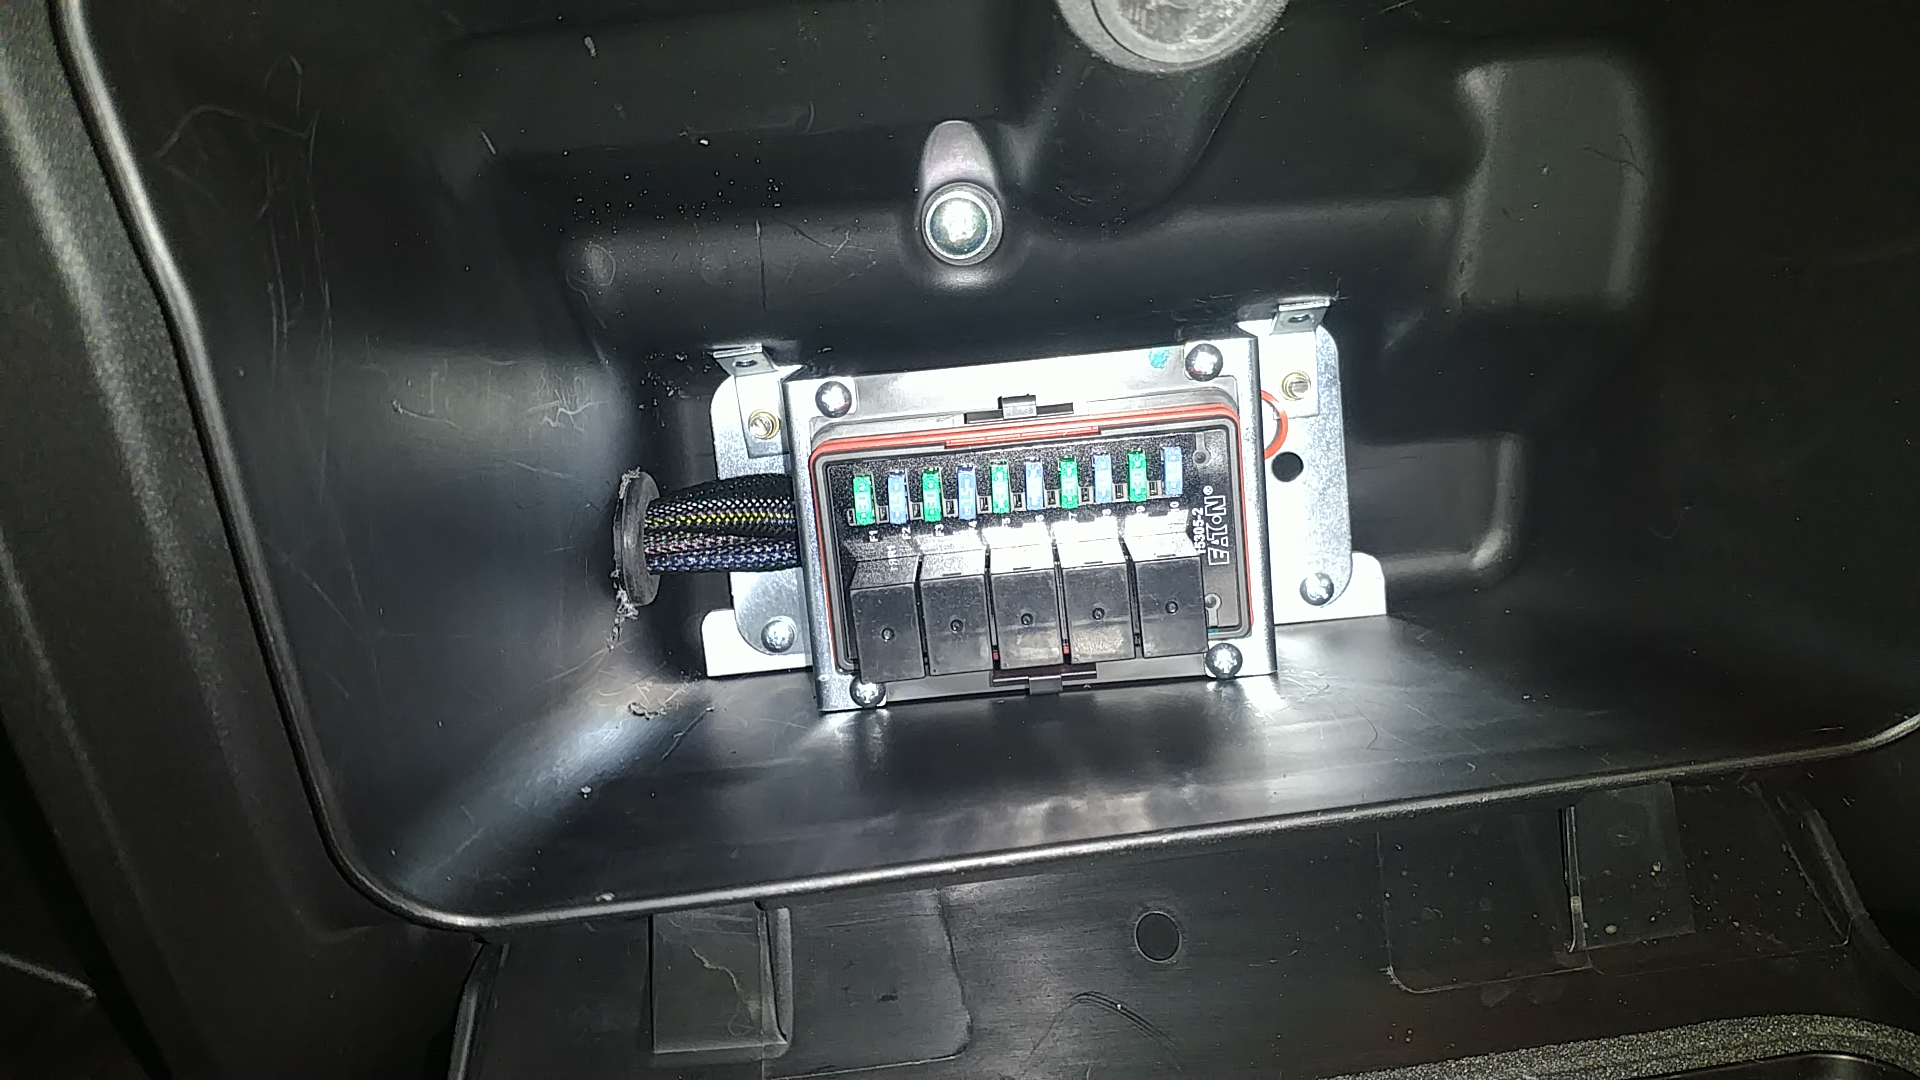 Need Help Fuse Box Install Kawasaki Teryx Forum Location Of Fuses In Power Distribution To Click Image For Larger Version Name Img 20180312 110908 Views 139 Size 8373